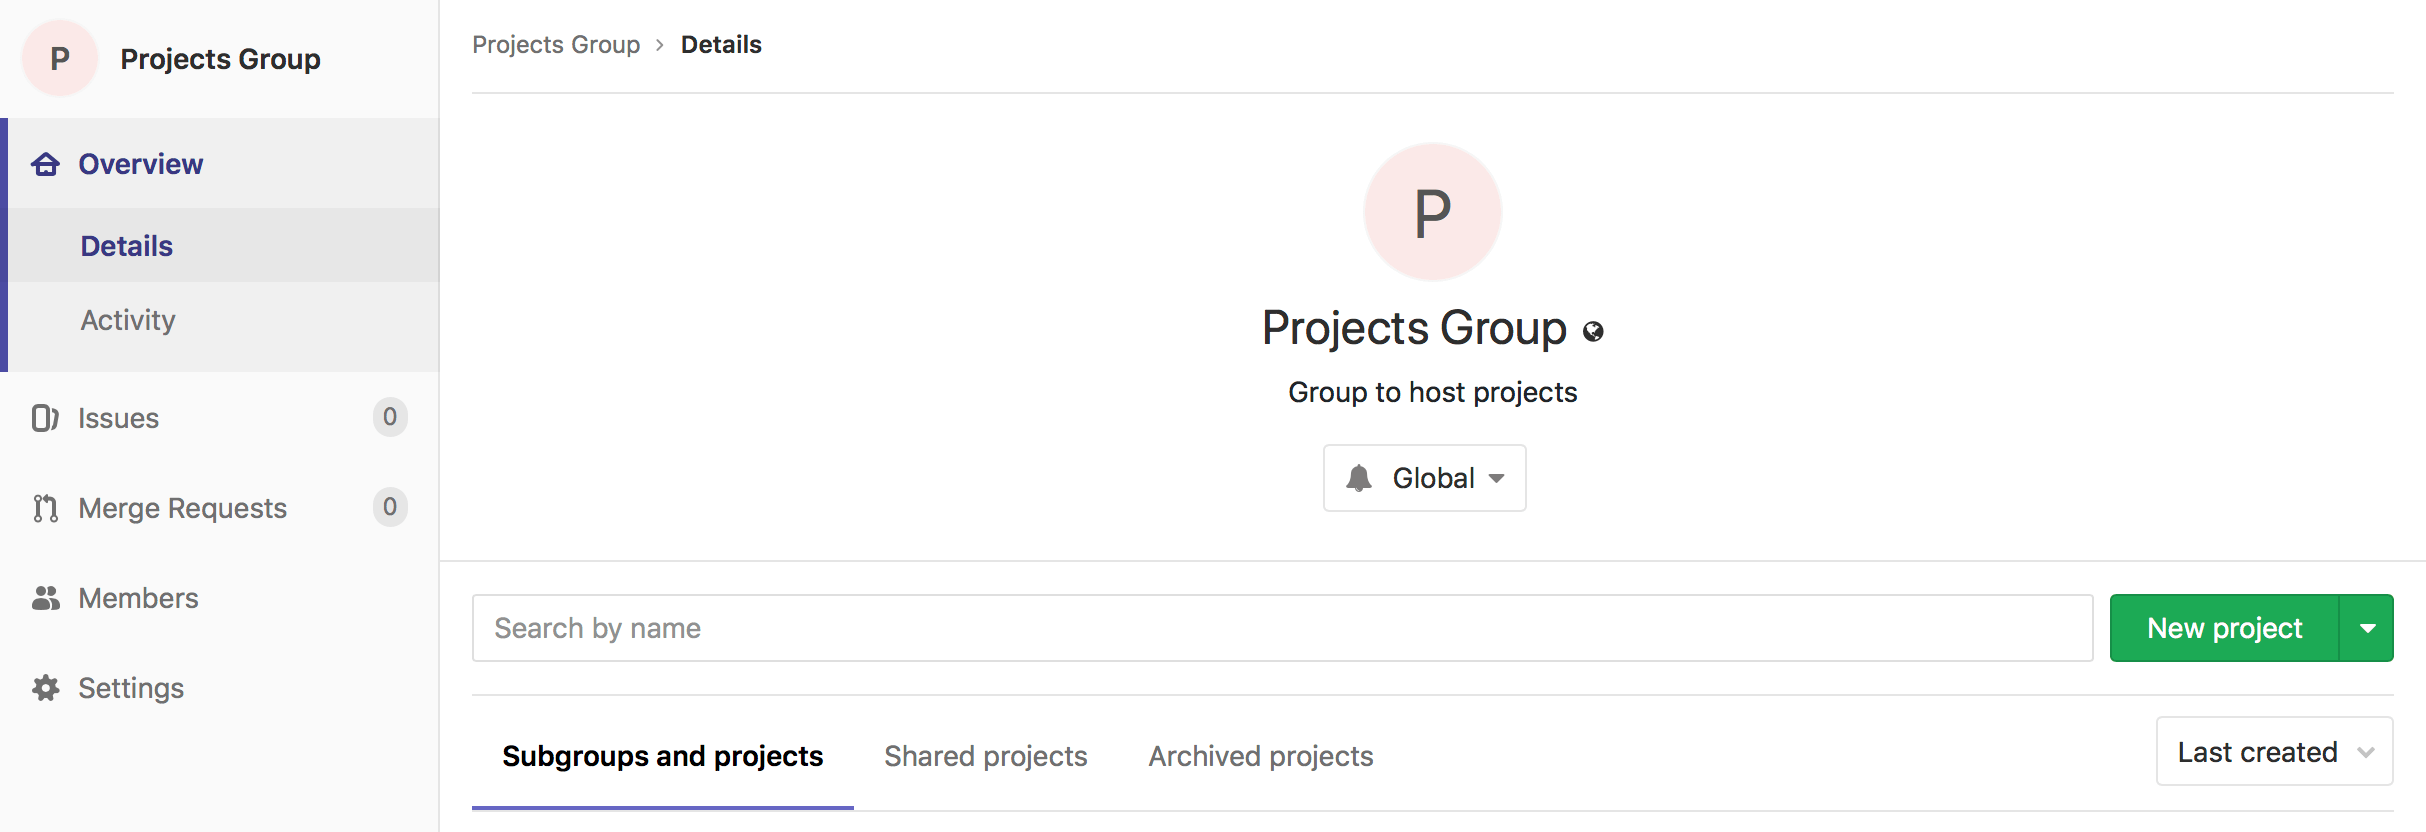 doc/user/group/img/create_new_project_from_group.png